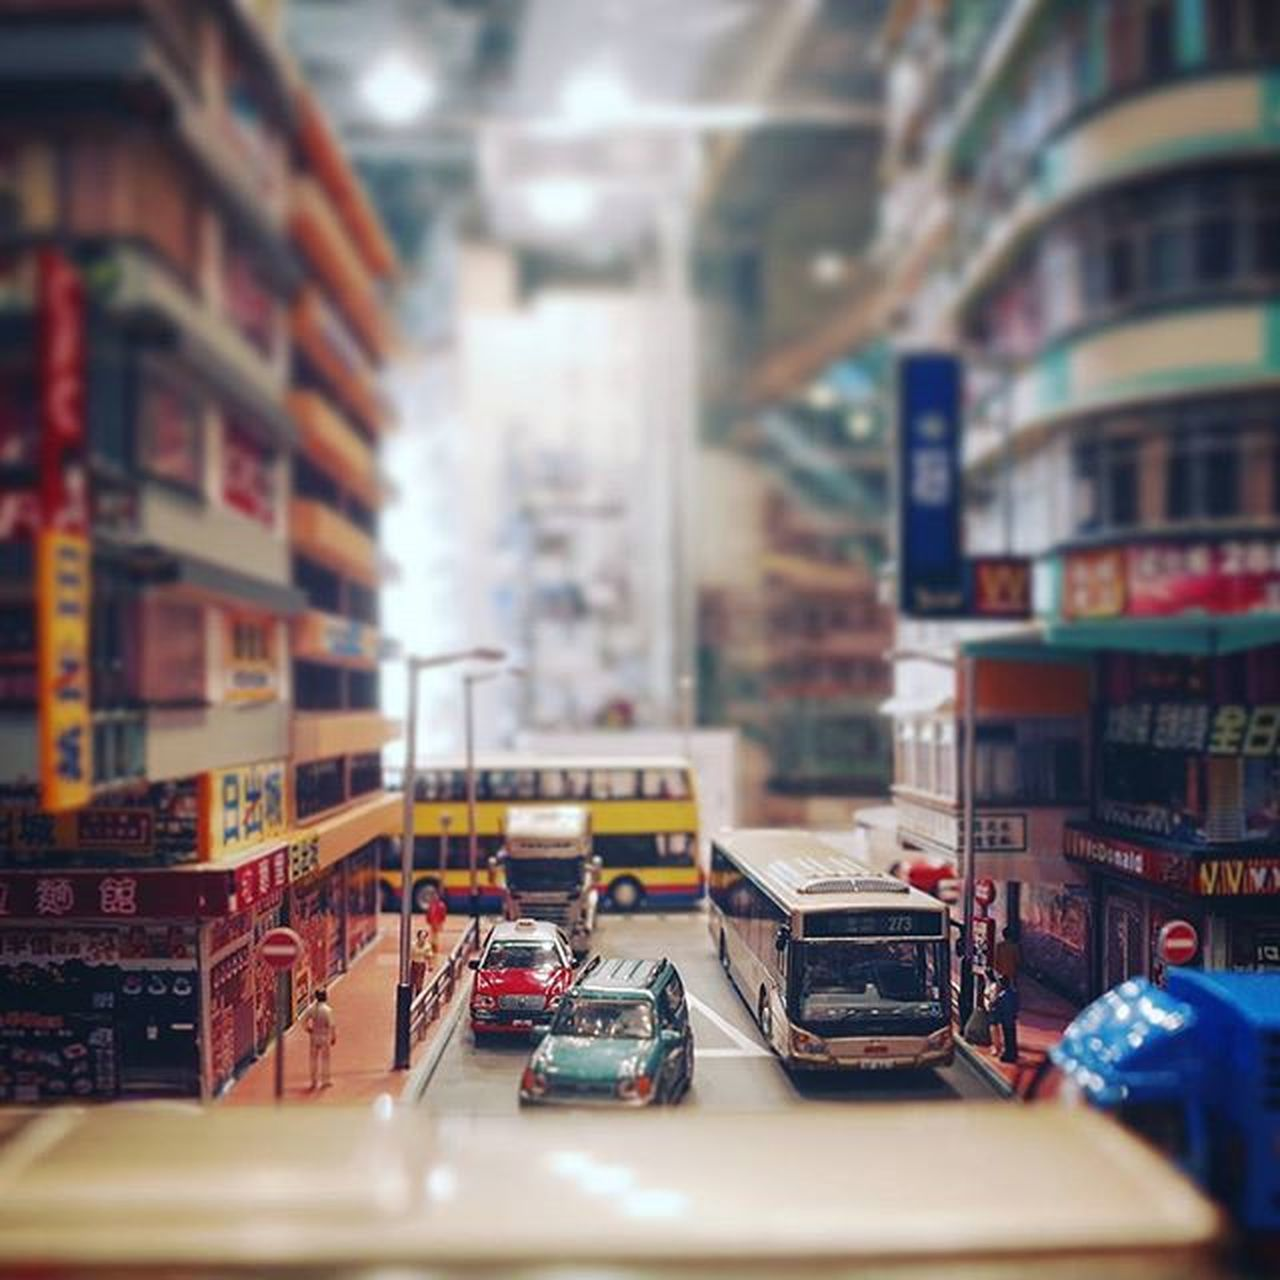 香港. Hk HongKong Building Car Text City Citylife Model ToyCar Langhamplace Carmodel Cartoys Bus Hkbus HongKongbus